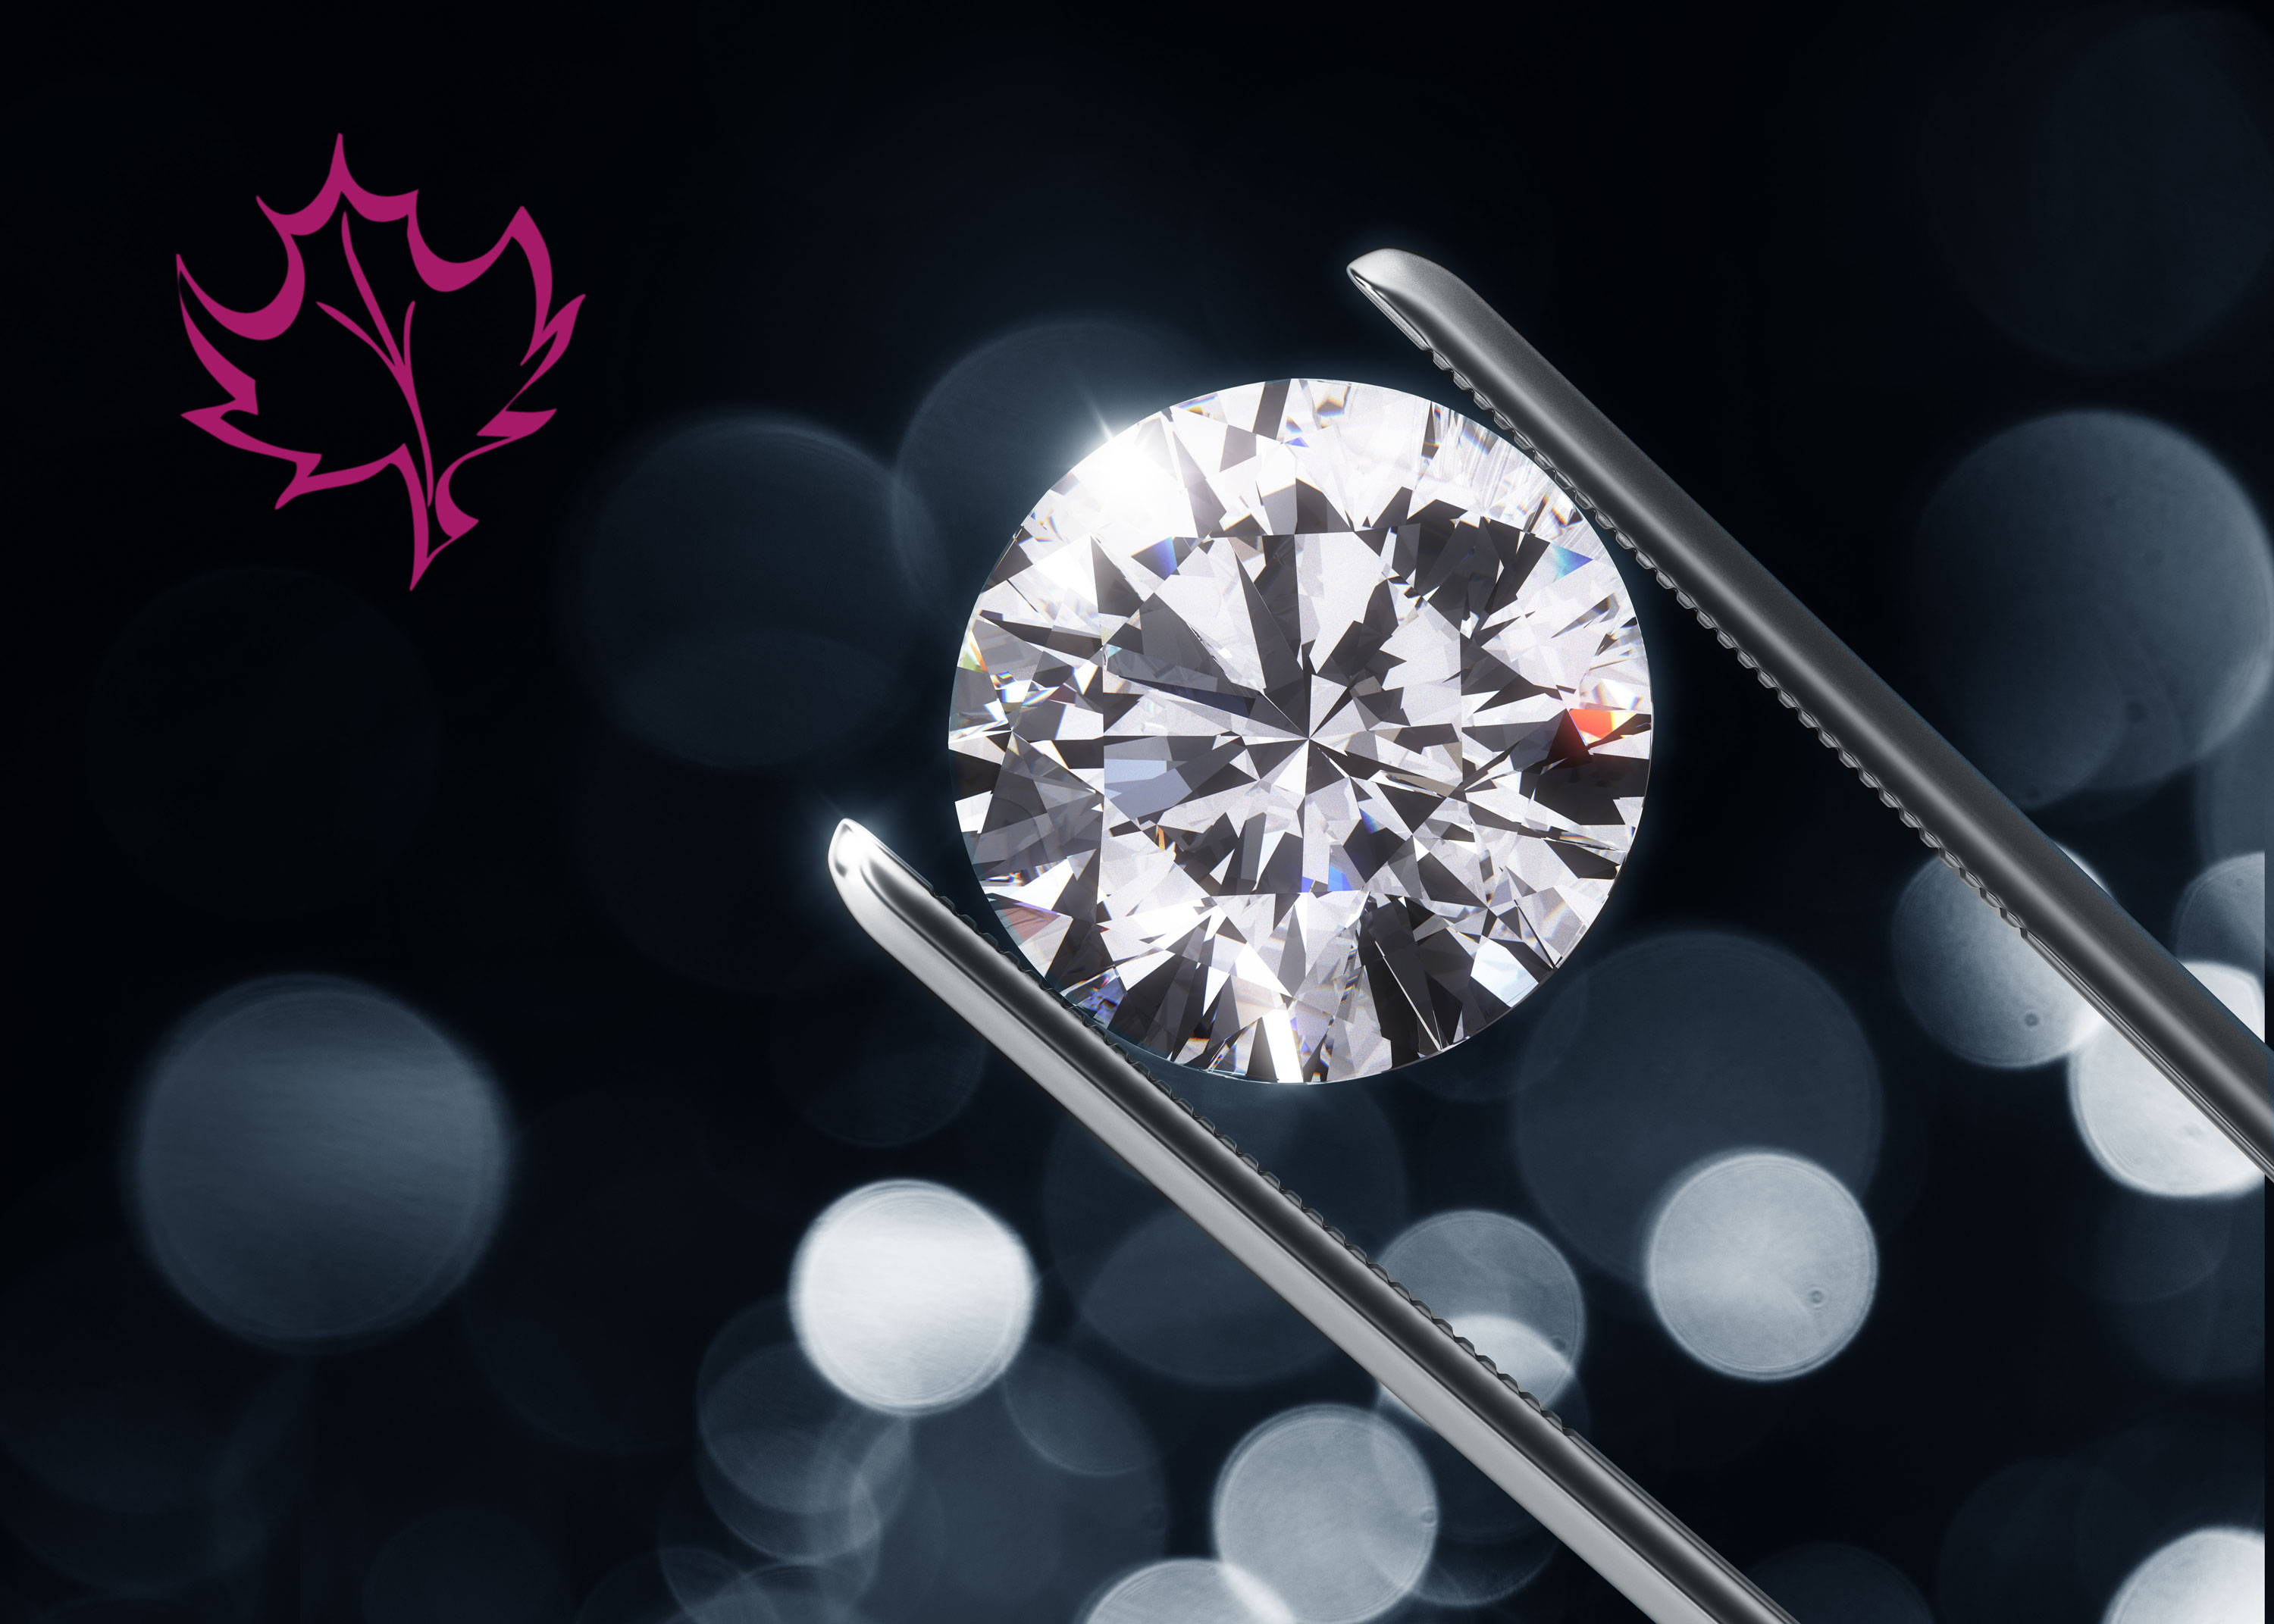 Hope for diamonds in Montreal. Seen here a beautiful diamond with lots of sparkle, held up t o catch the light.